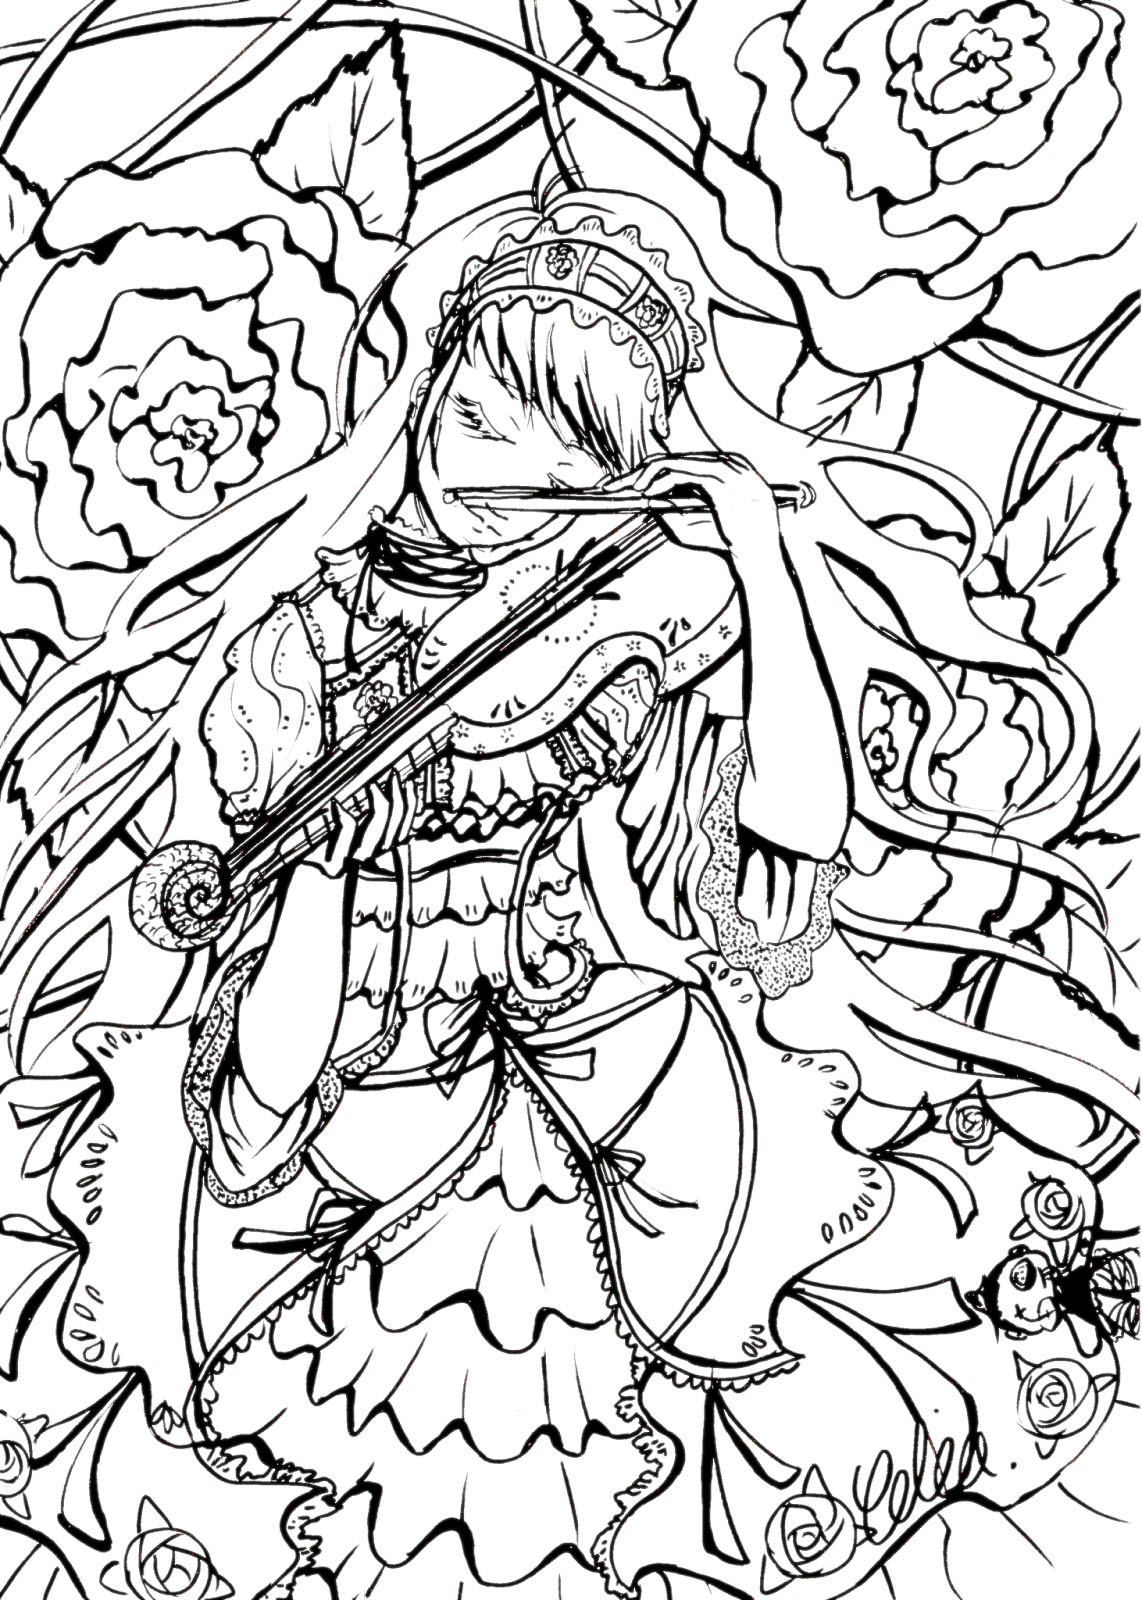 Princess playing her violin, flowery background